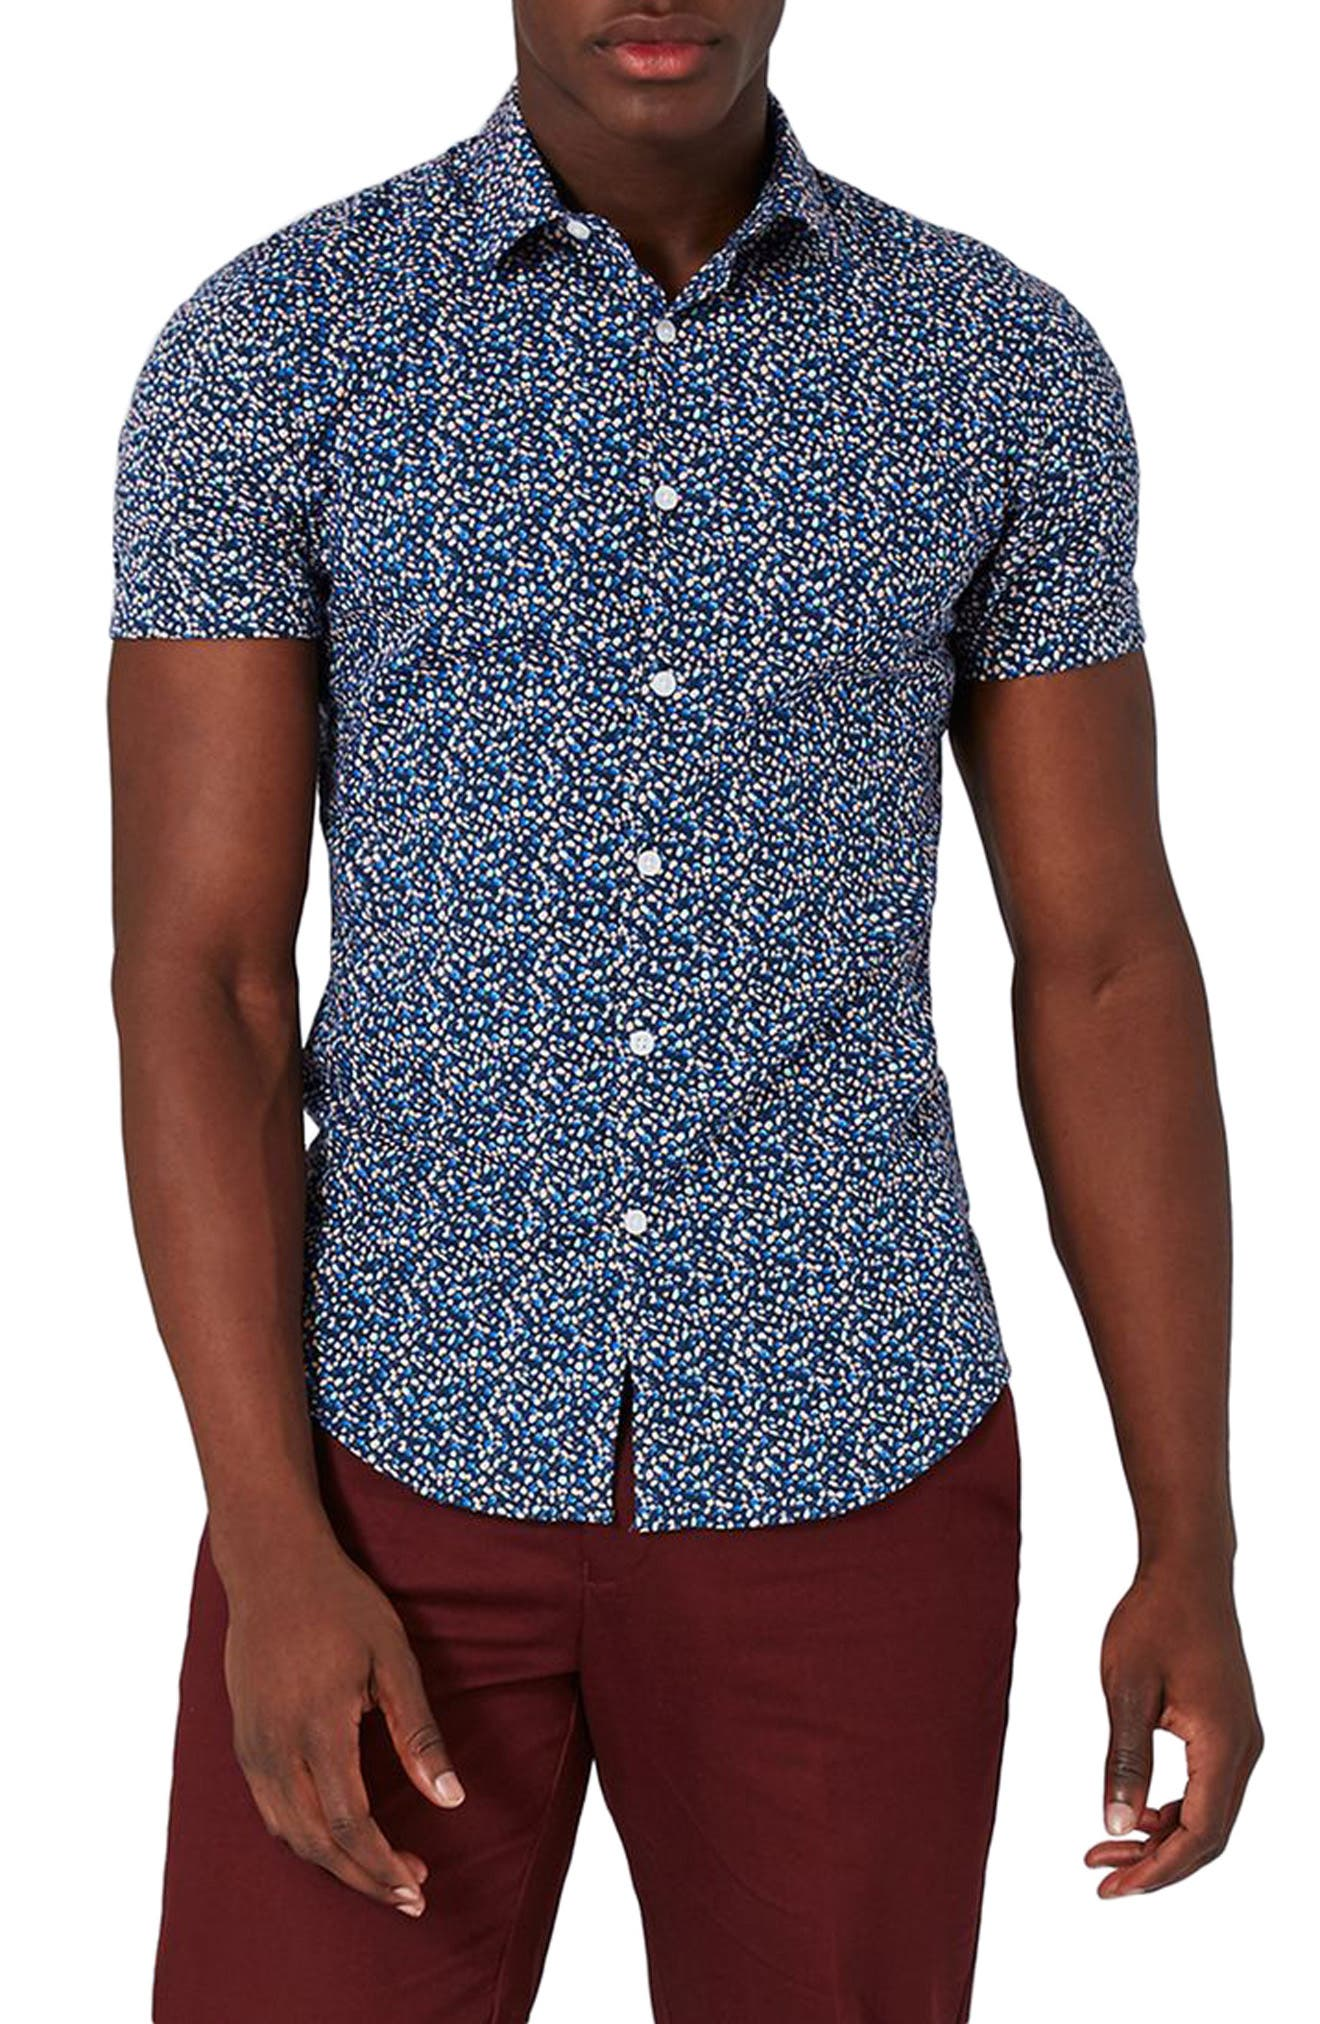 Alternate Image 1 Selected - Topman Blotch Print Shirt